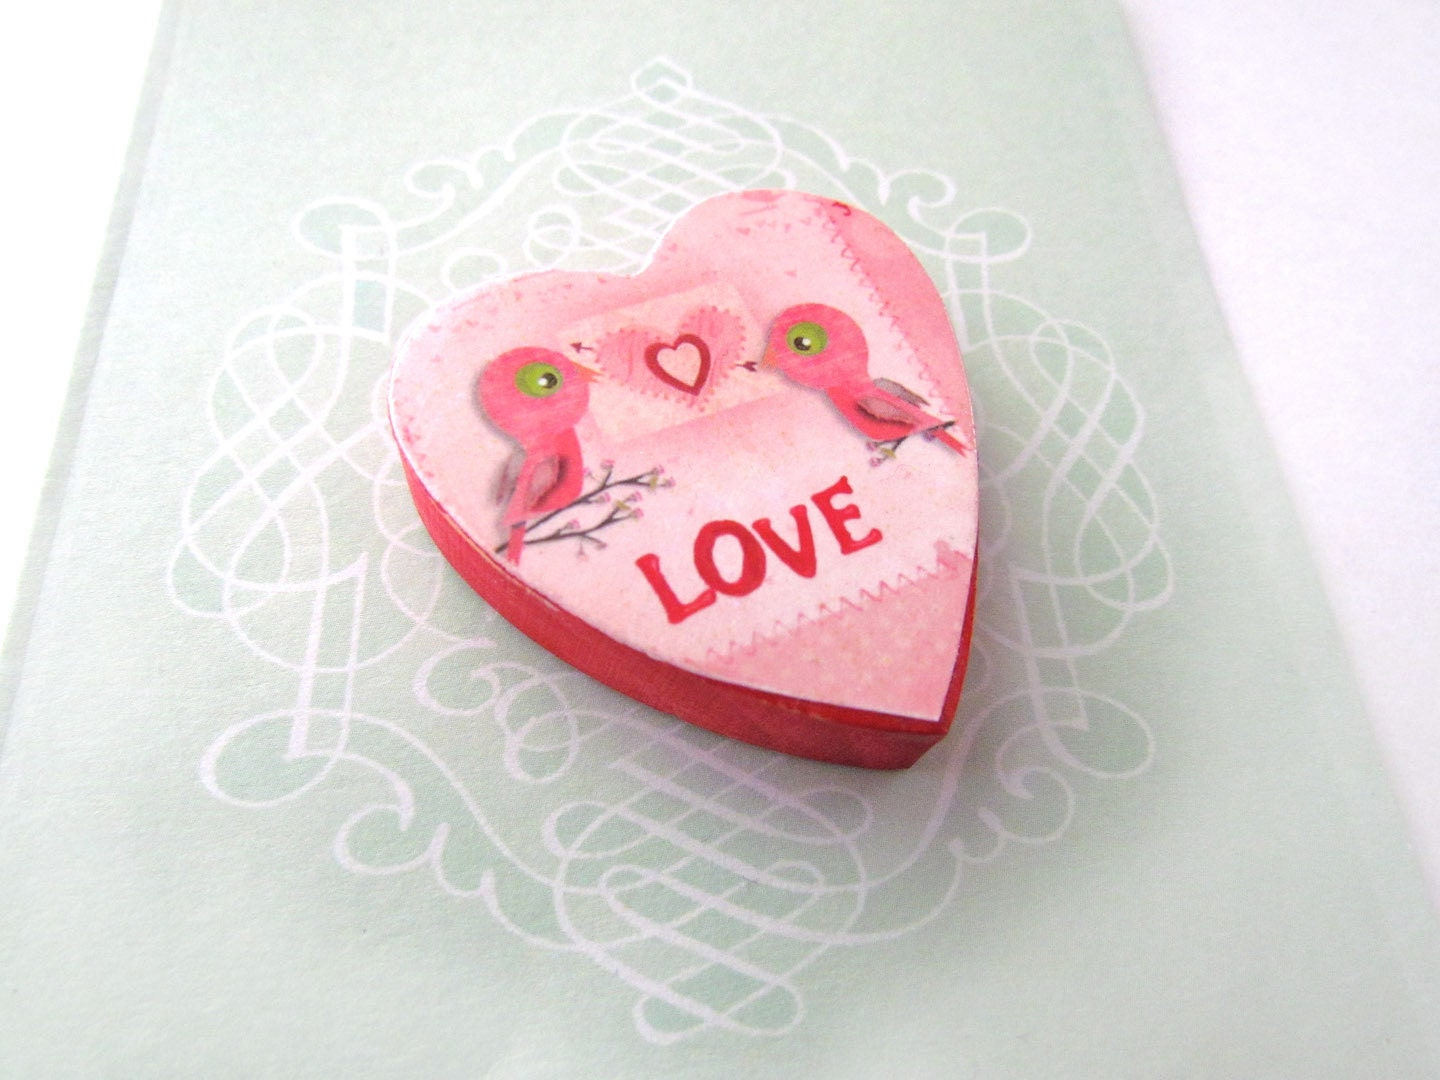 Pink LOVE Birds Magnet - Valentines Day Magnet - Rustic Heart Shaped Refrigerator Magnet - Shabby Chic Decor - WalterSilva